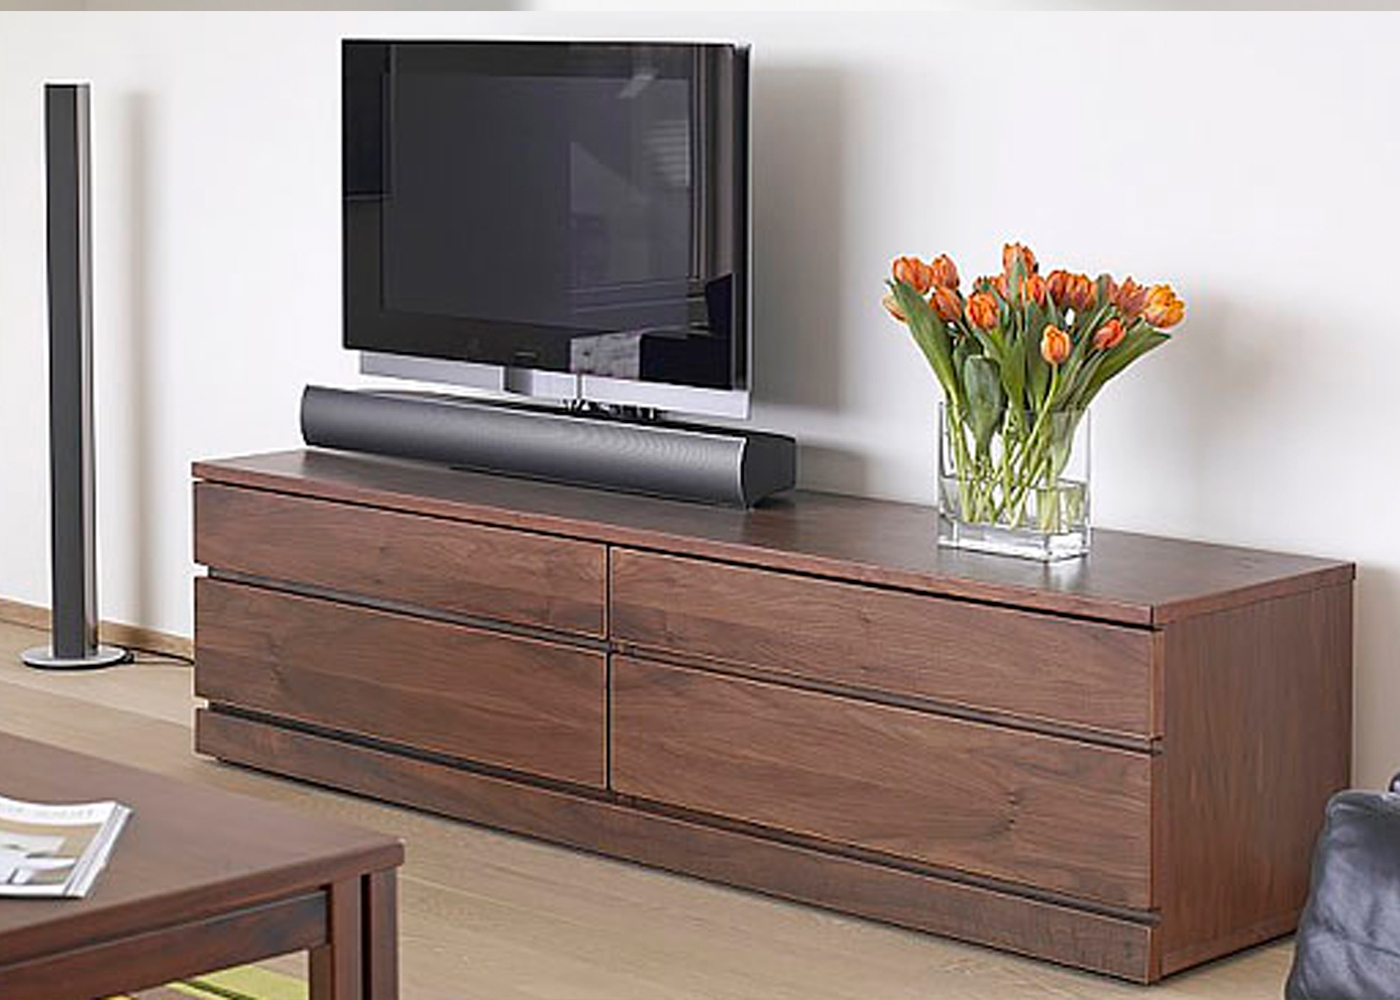 Popular Skovby Sm87 Tv Cabinet In Walnut Finish 1 – Midfurn Furniture Superstore Inside Walnut Tv Cabinets With Doors (Gallery 12 of 20)